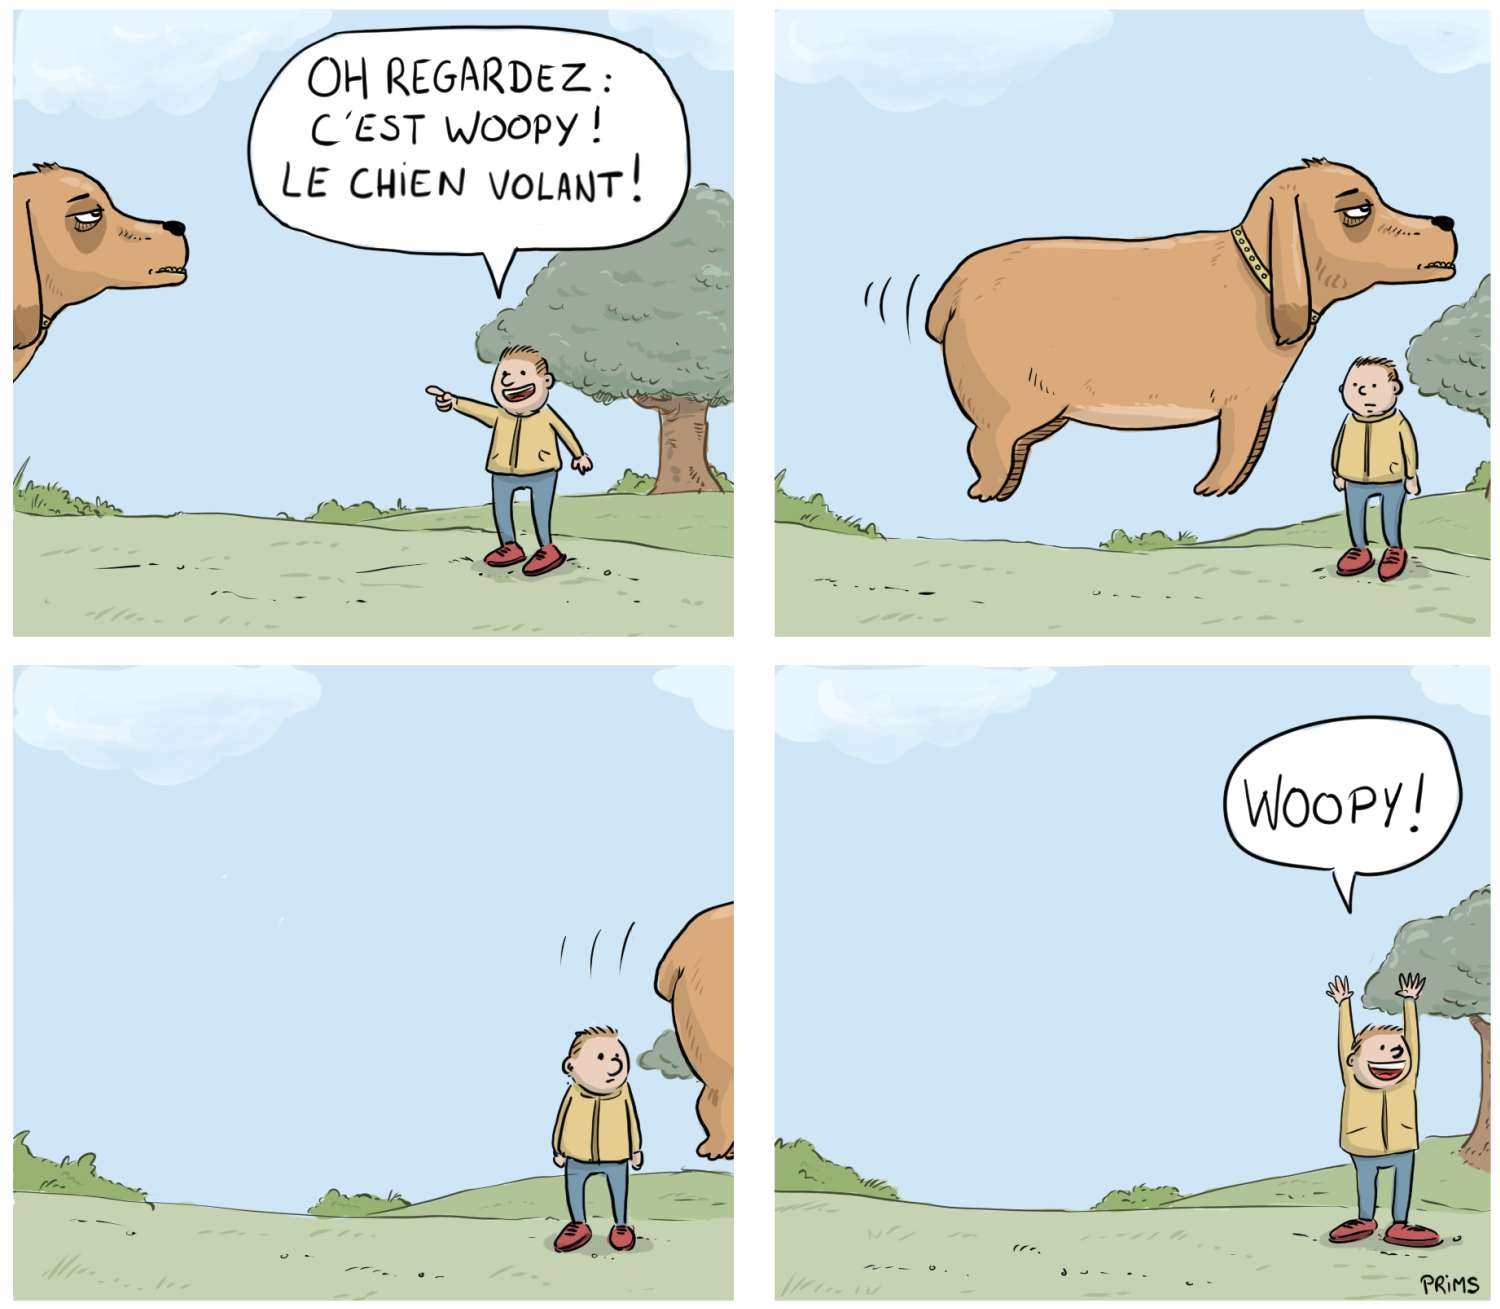 Dessin, BD : Woopy le chien volant